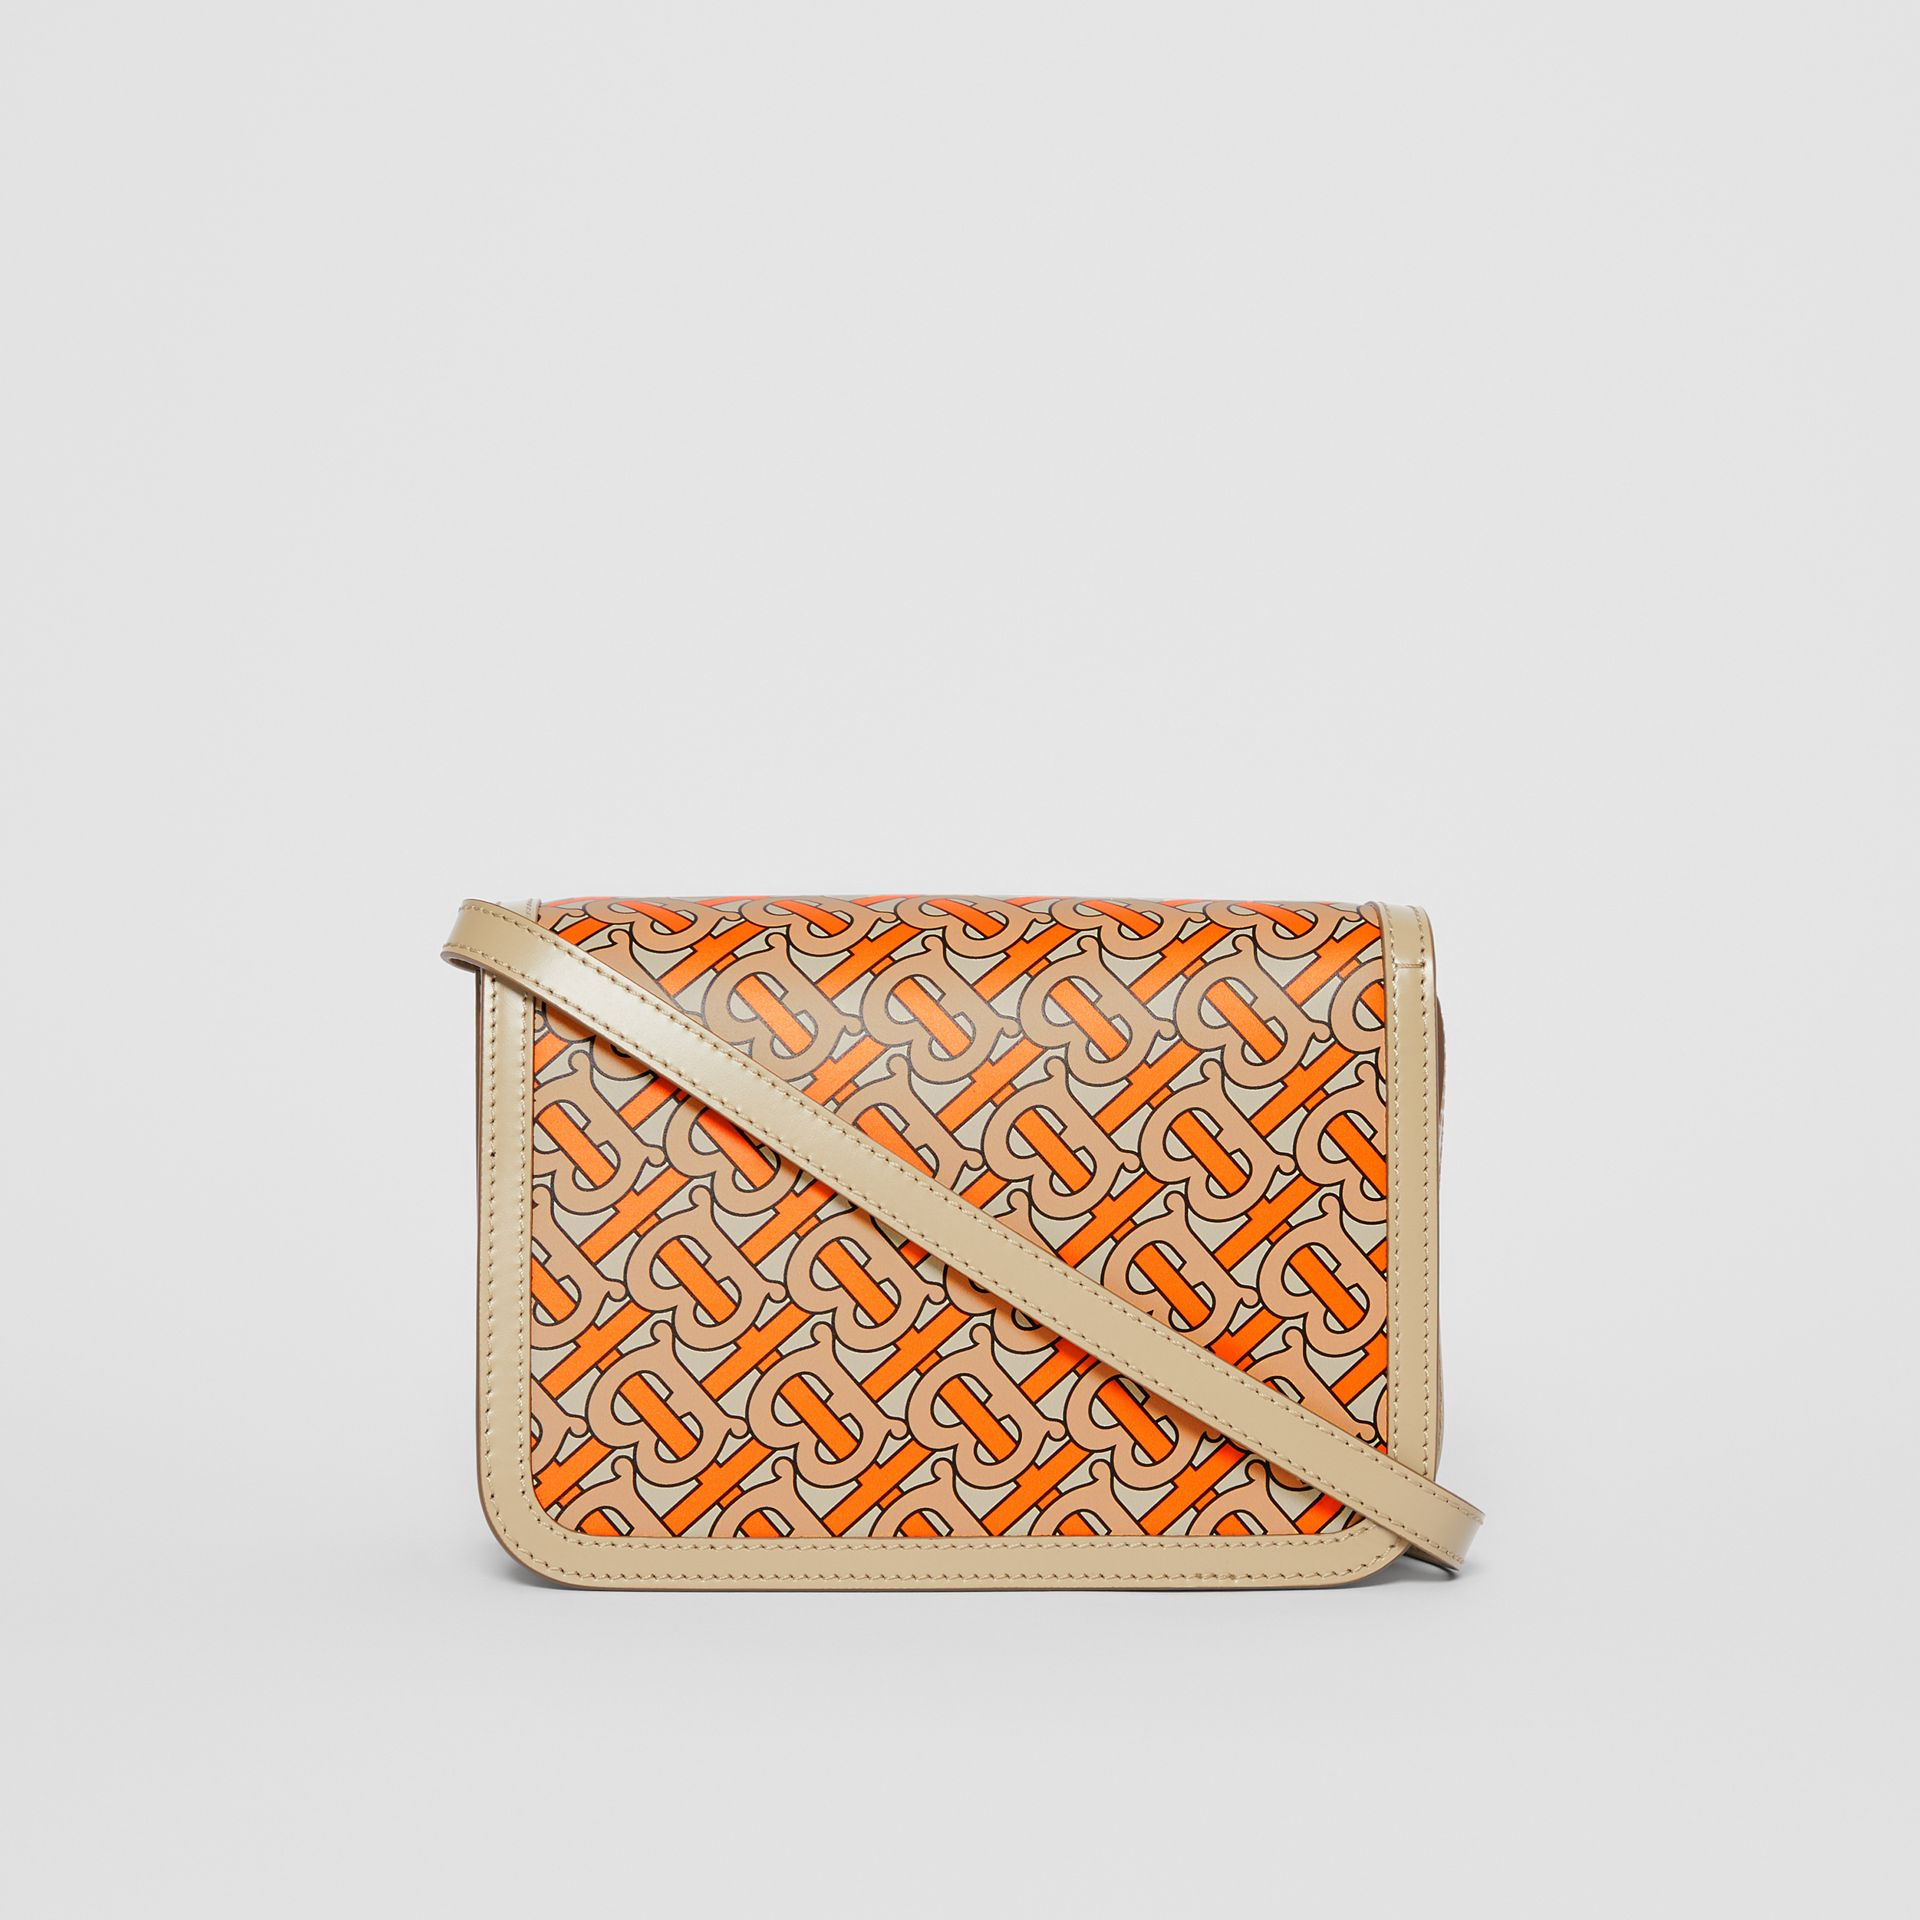 Small Monogram Print Leather TB Bag in Bright Orange - Women | Burberry Canada - gallery image 7